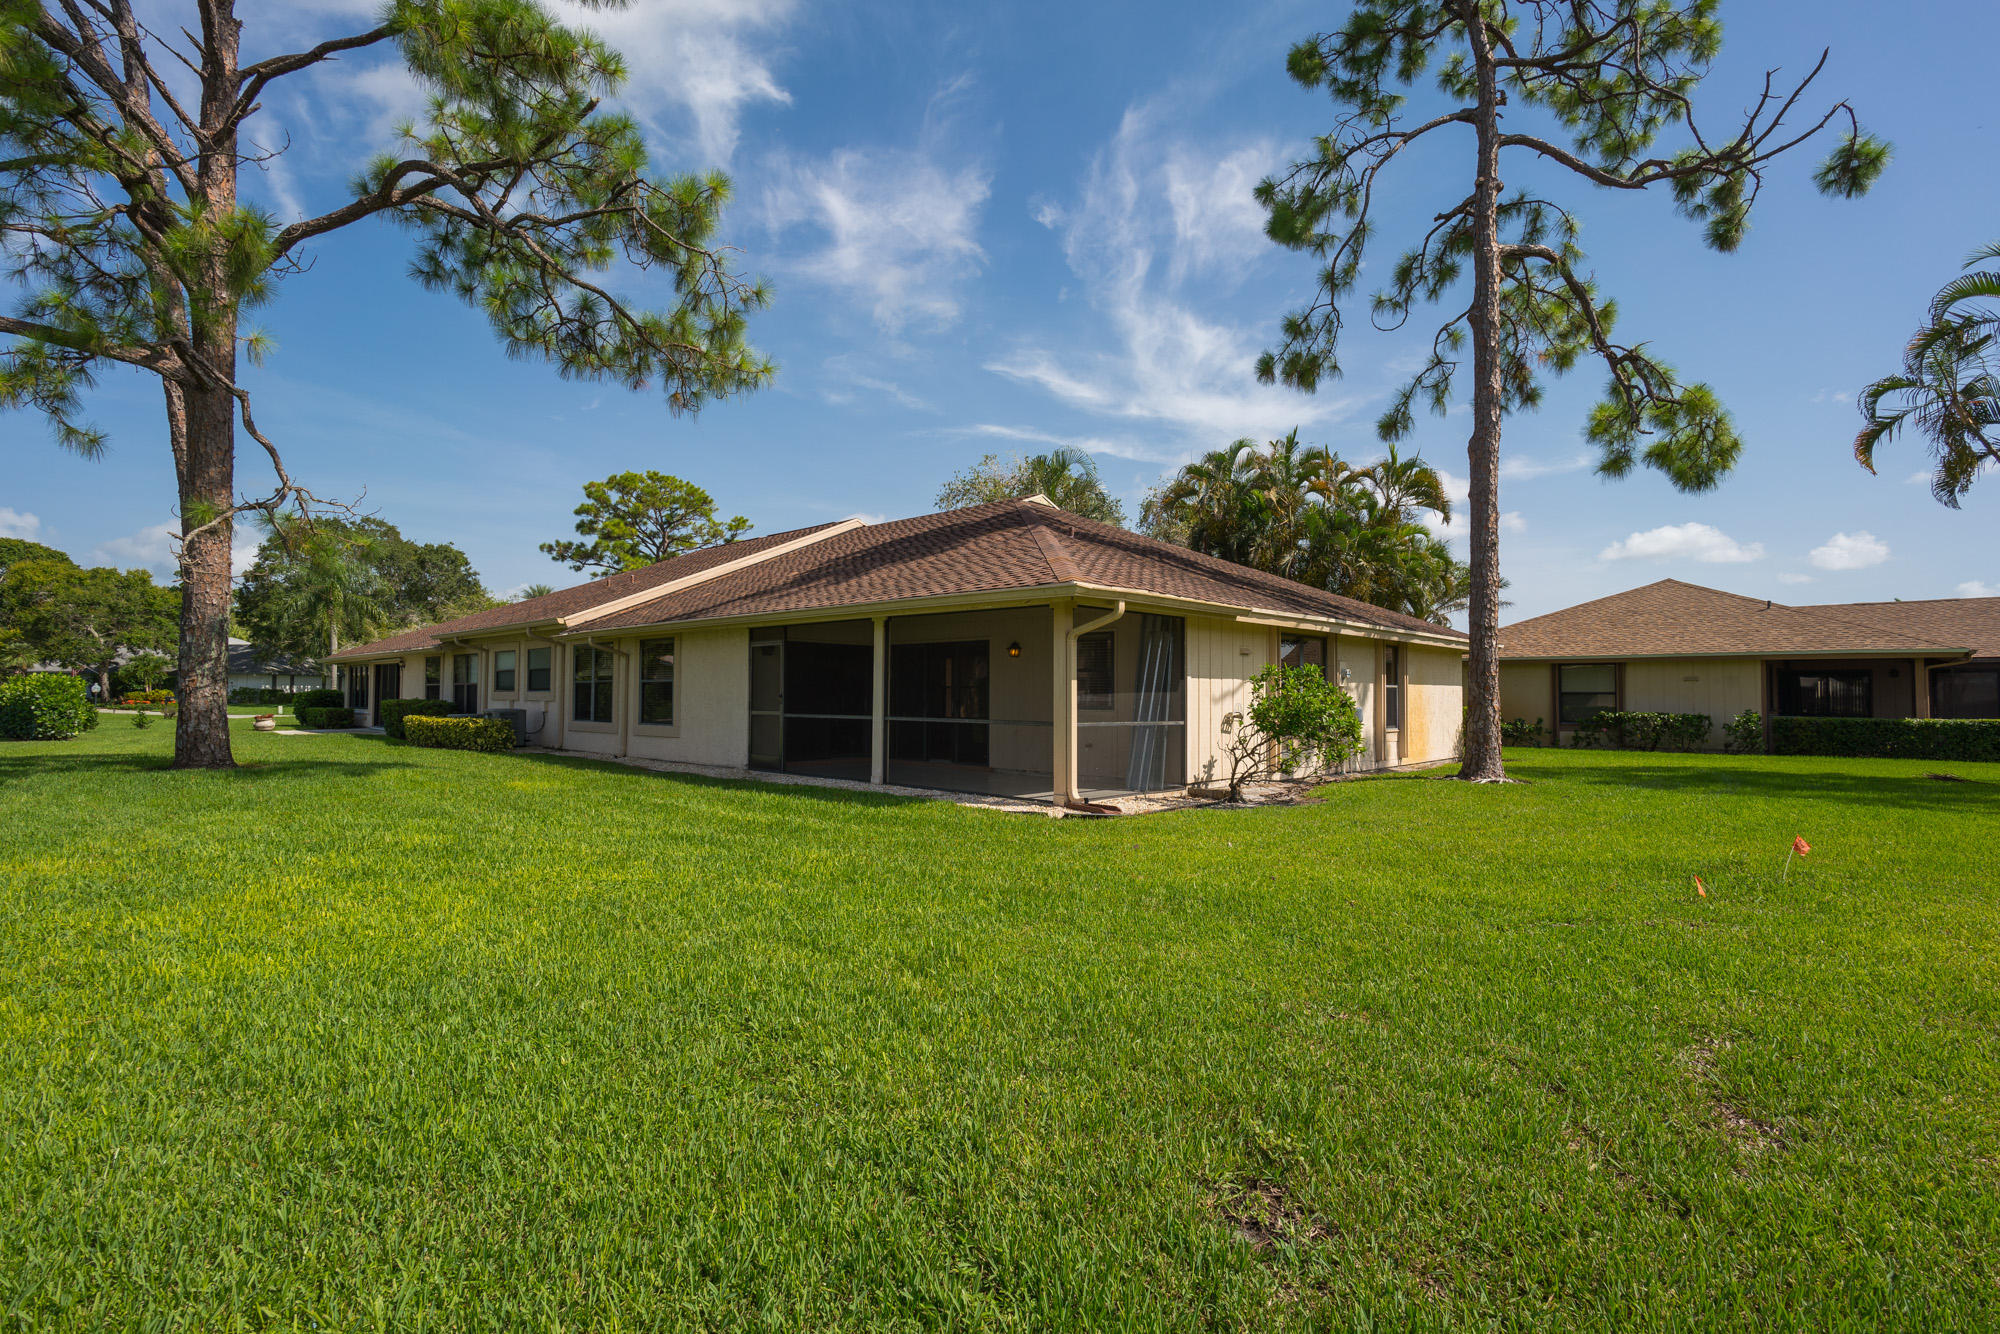 6234 Brandon Street, Palm Beach Gardens, Florida 33418, 3 Bedrooms Bedrooms, ,2 BathroomsBathrooms,F,Townhouse,Brandon,RX-10472042